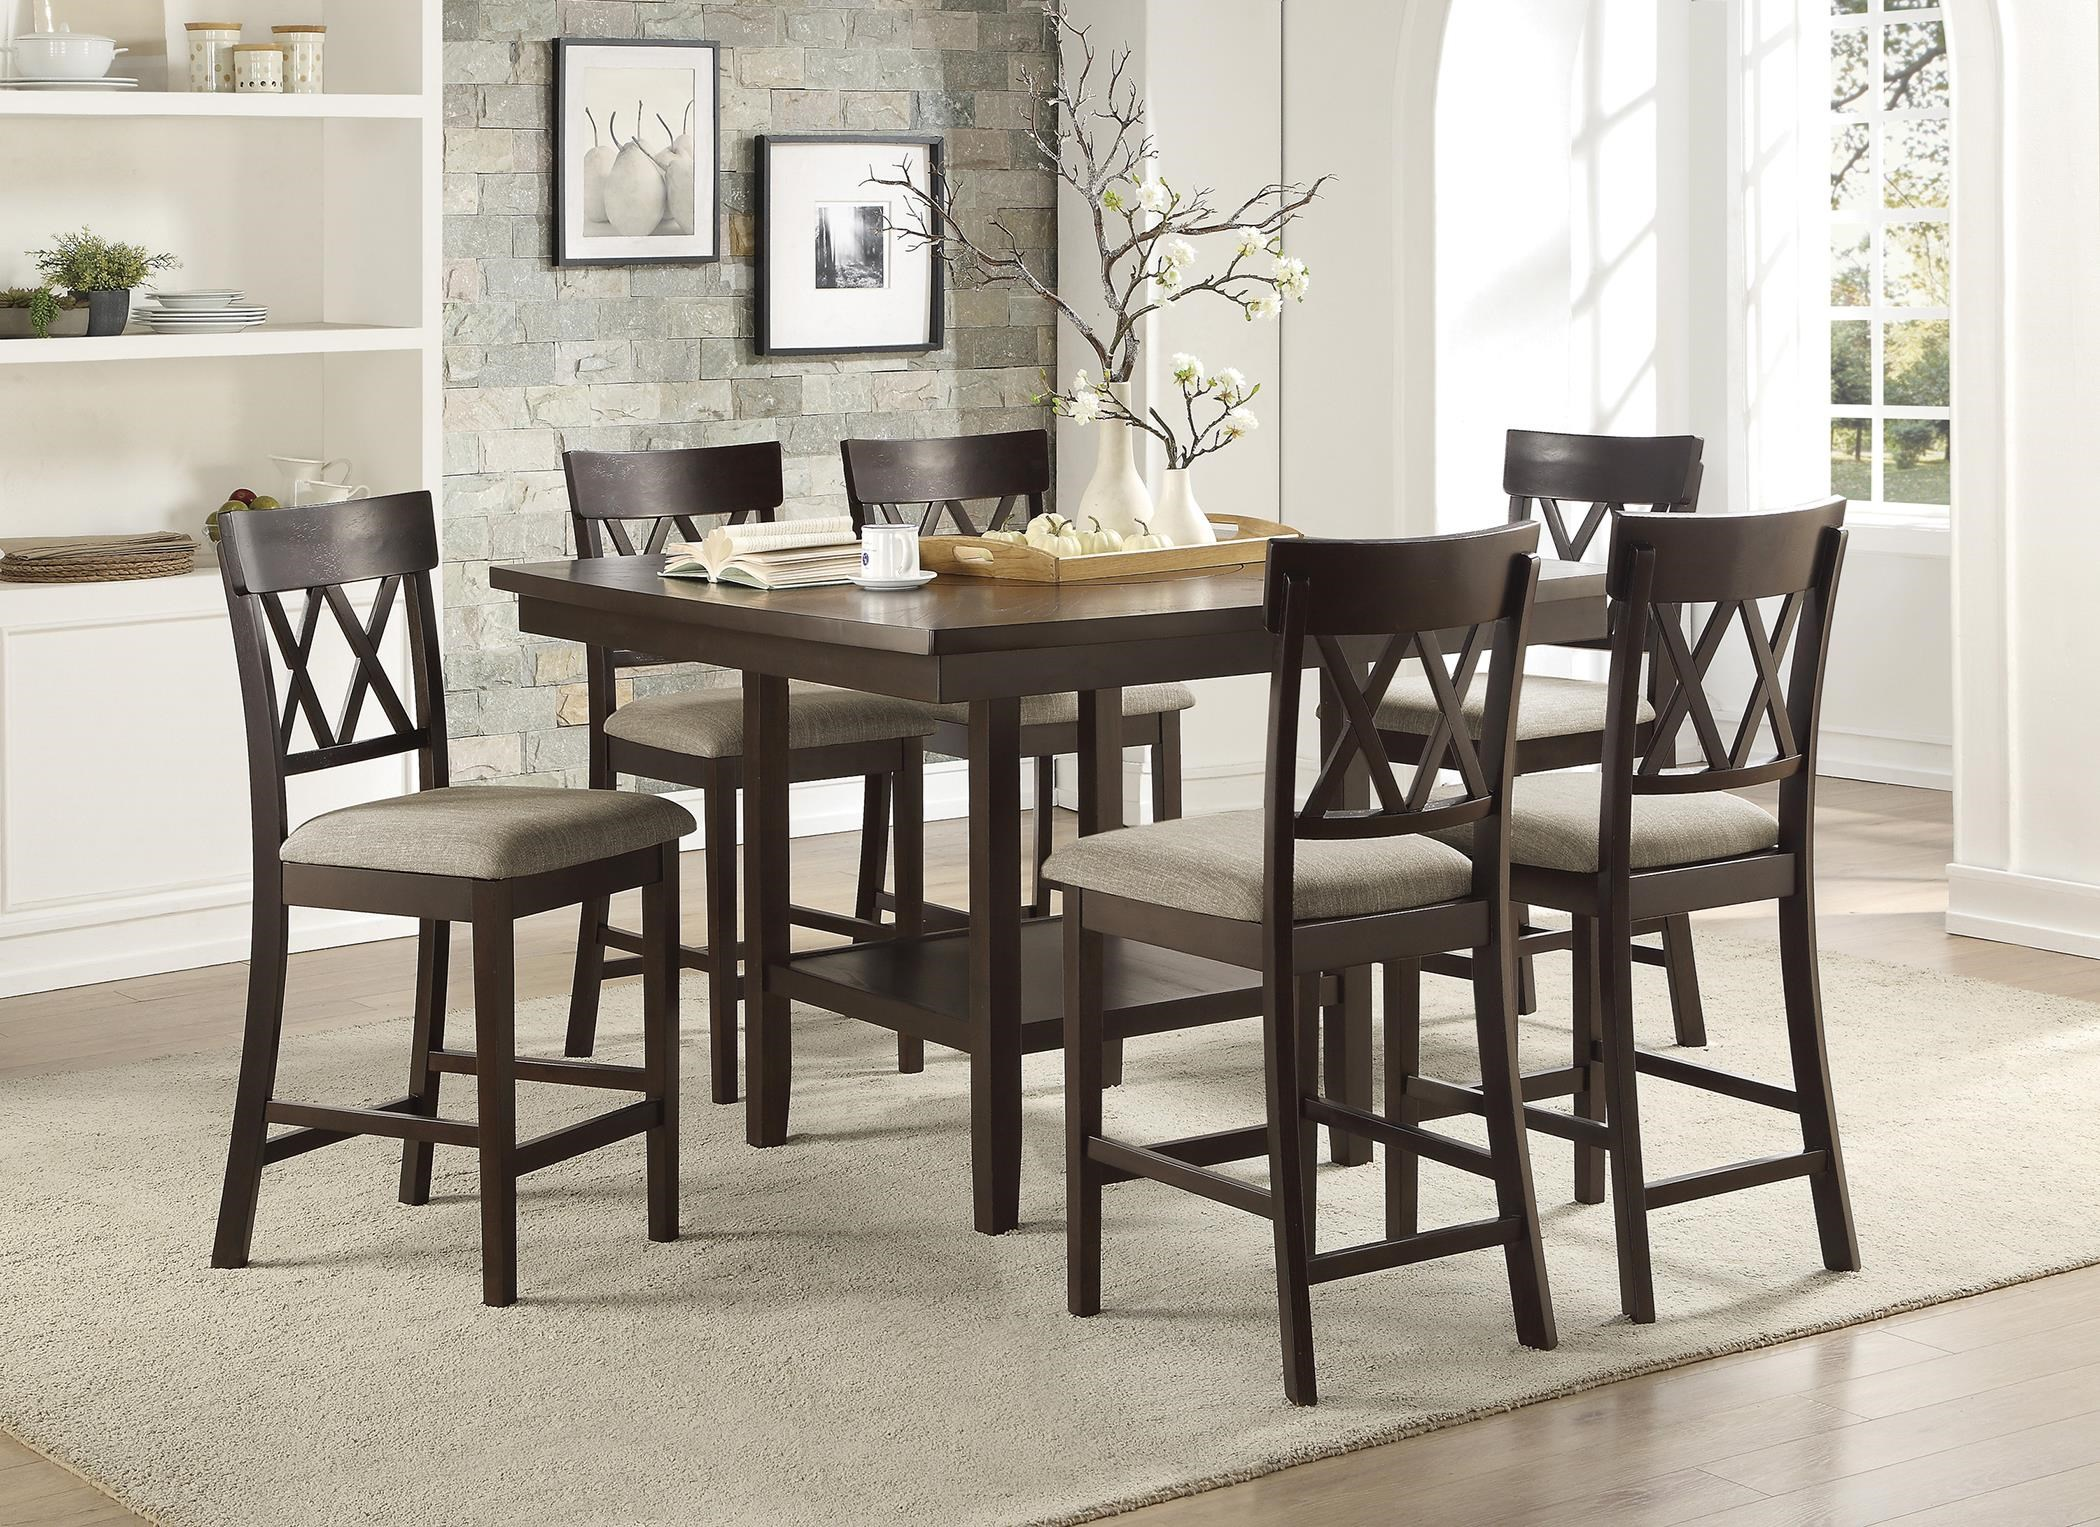 Balin 5 Piece Counter Height Dining Set by Homelegance at Darvin Furniture